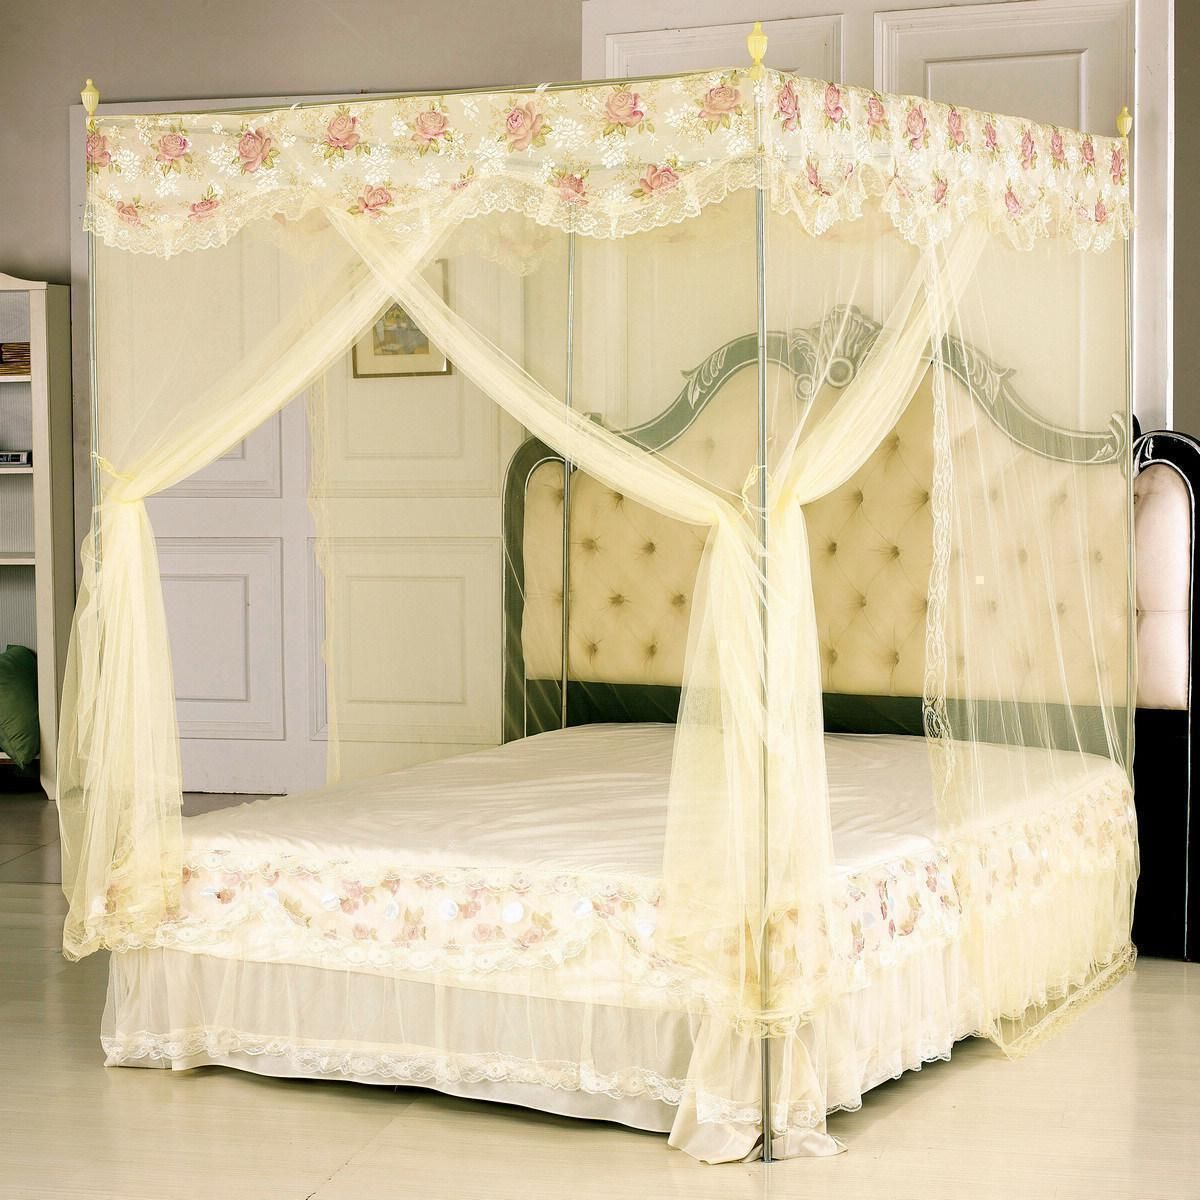 Modern canopy bed curtains - Modern Style Small Canopy Bed Design With White Wall Paint Color And Handsome Headboard Decor Also